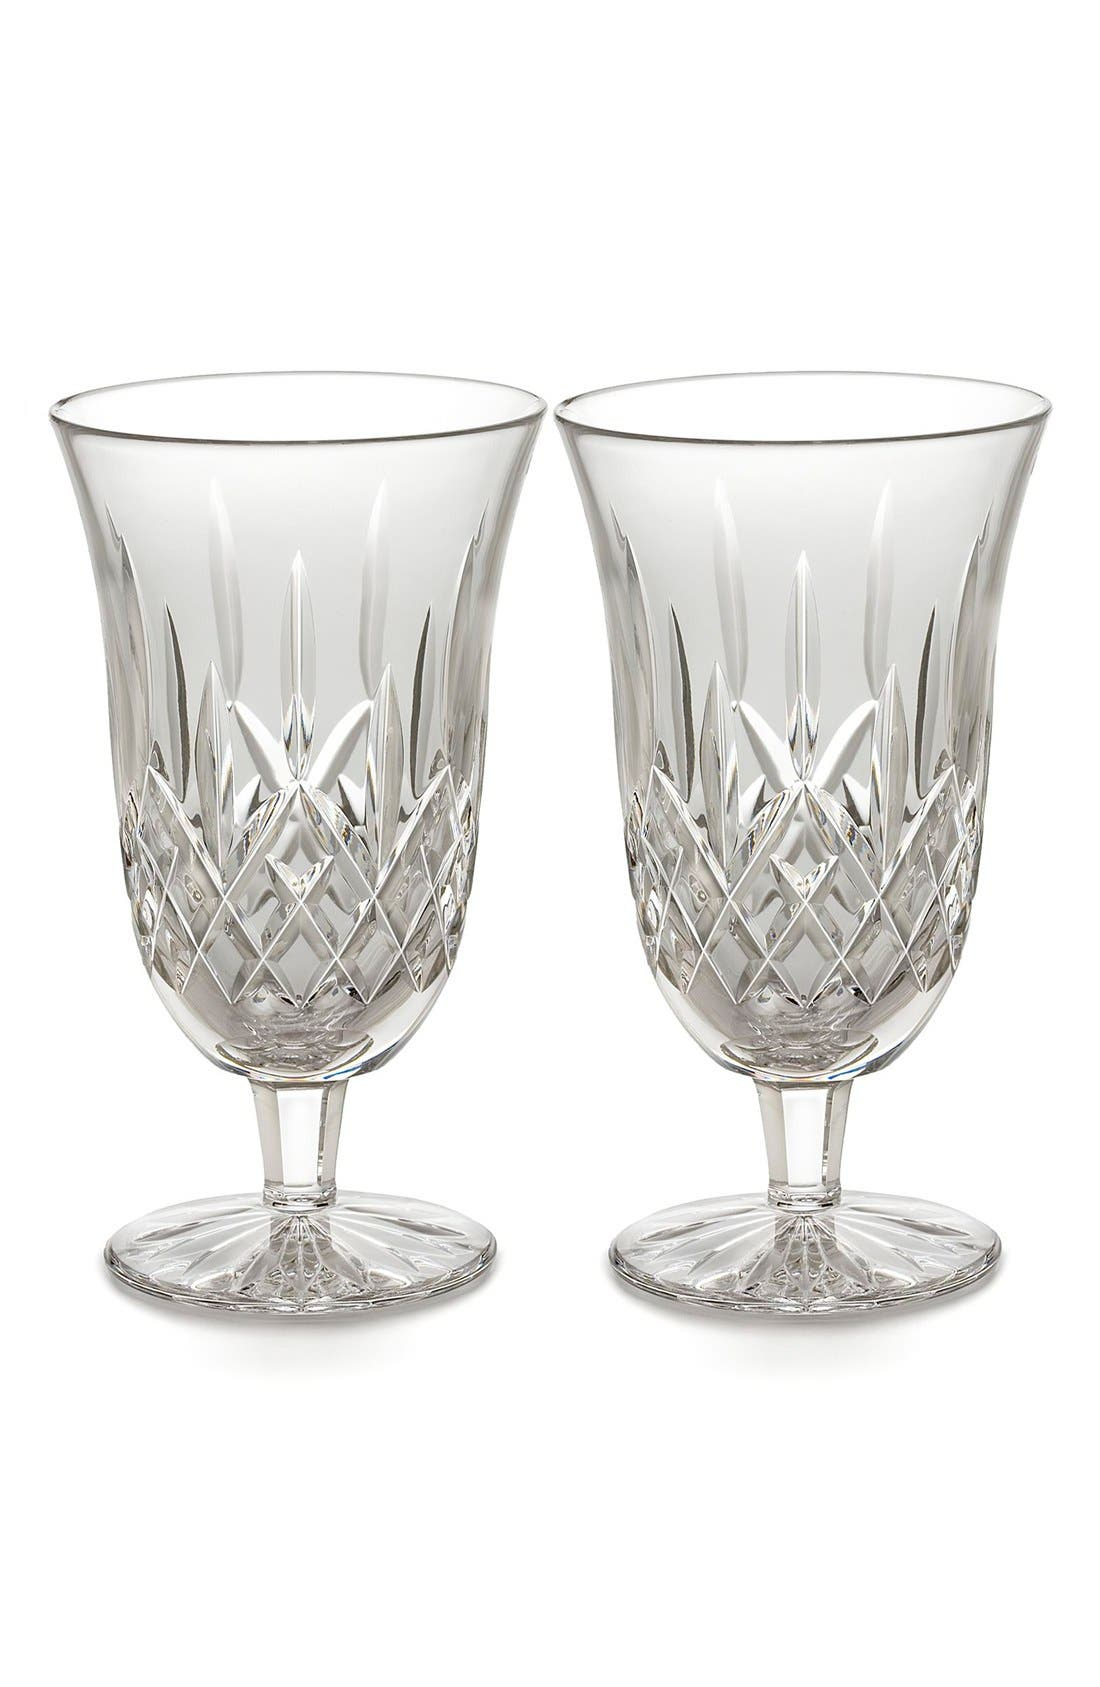 Main Image - Waterford 'Lismore' Lead Crystal Iced Beverage Glasses (Set of 2)